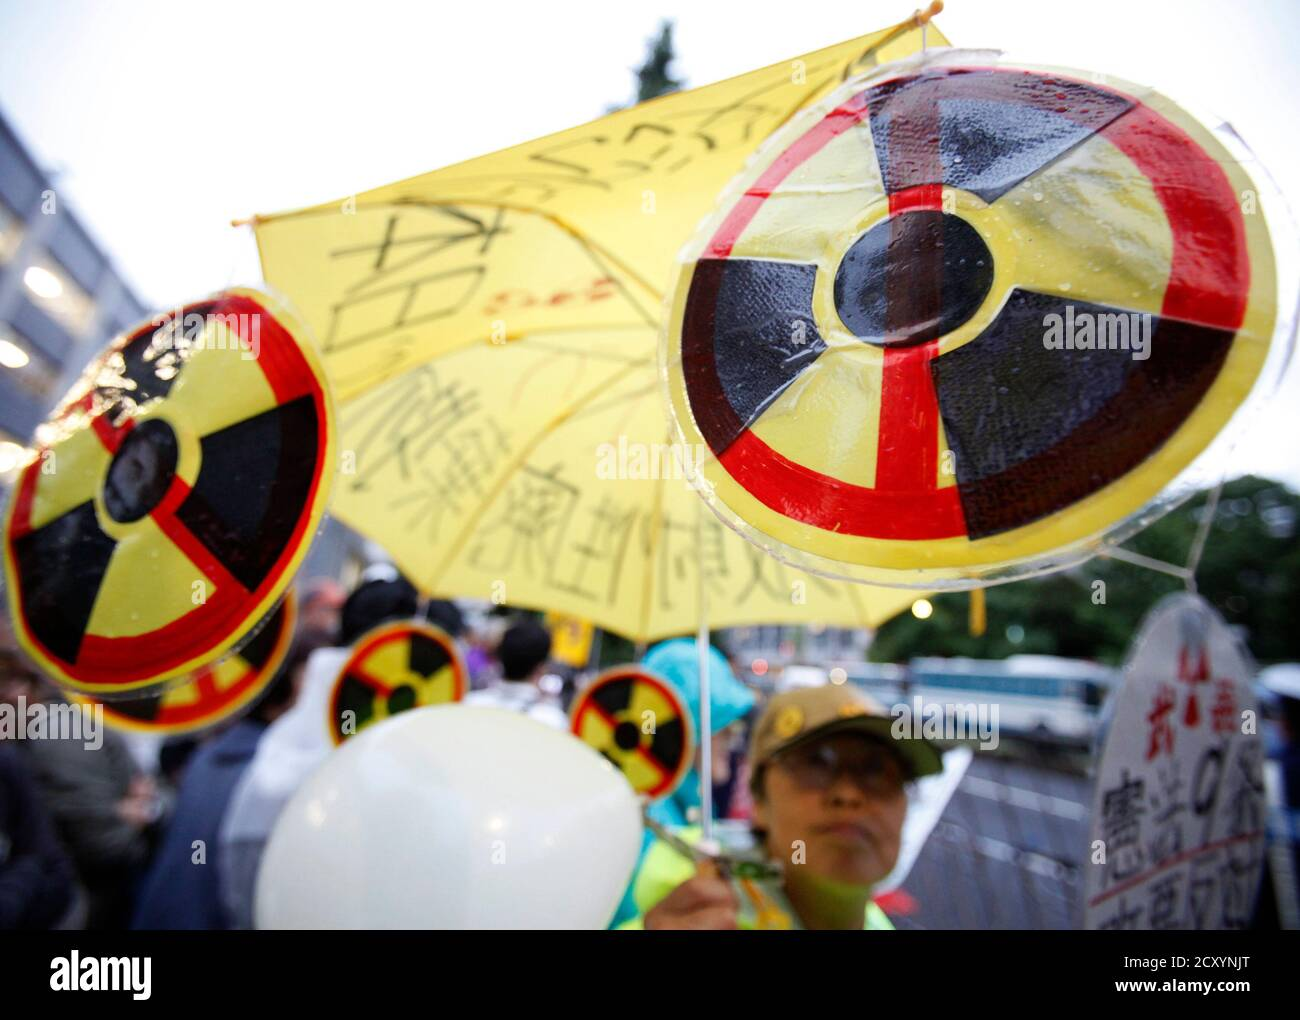 A woman holds an umbrella with illustrations of anti-nuclear signs during a demonstration outside the prime minister's official residence in Tokyo July 20, 2012. Japan's debate over nuclear power has become increasingly heated after incumbent Prime Minister Yoshihiko Noda's decision to restart idled reactors despite persistent public safety concerns following last year's Fukushima nuclear crisis. REUTERS/Yuriko Nakao (JAPAN - Tags: POLITICS CIVIL UNREST ENERGY) Stock Photo